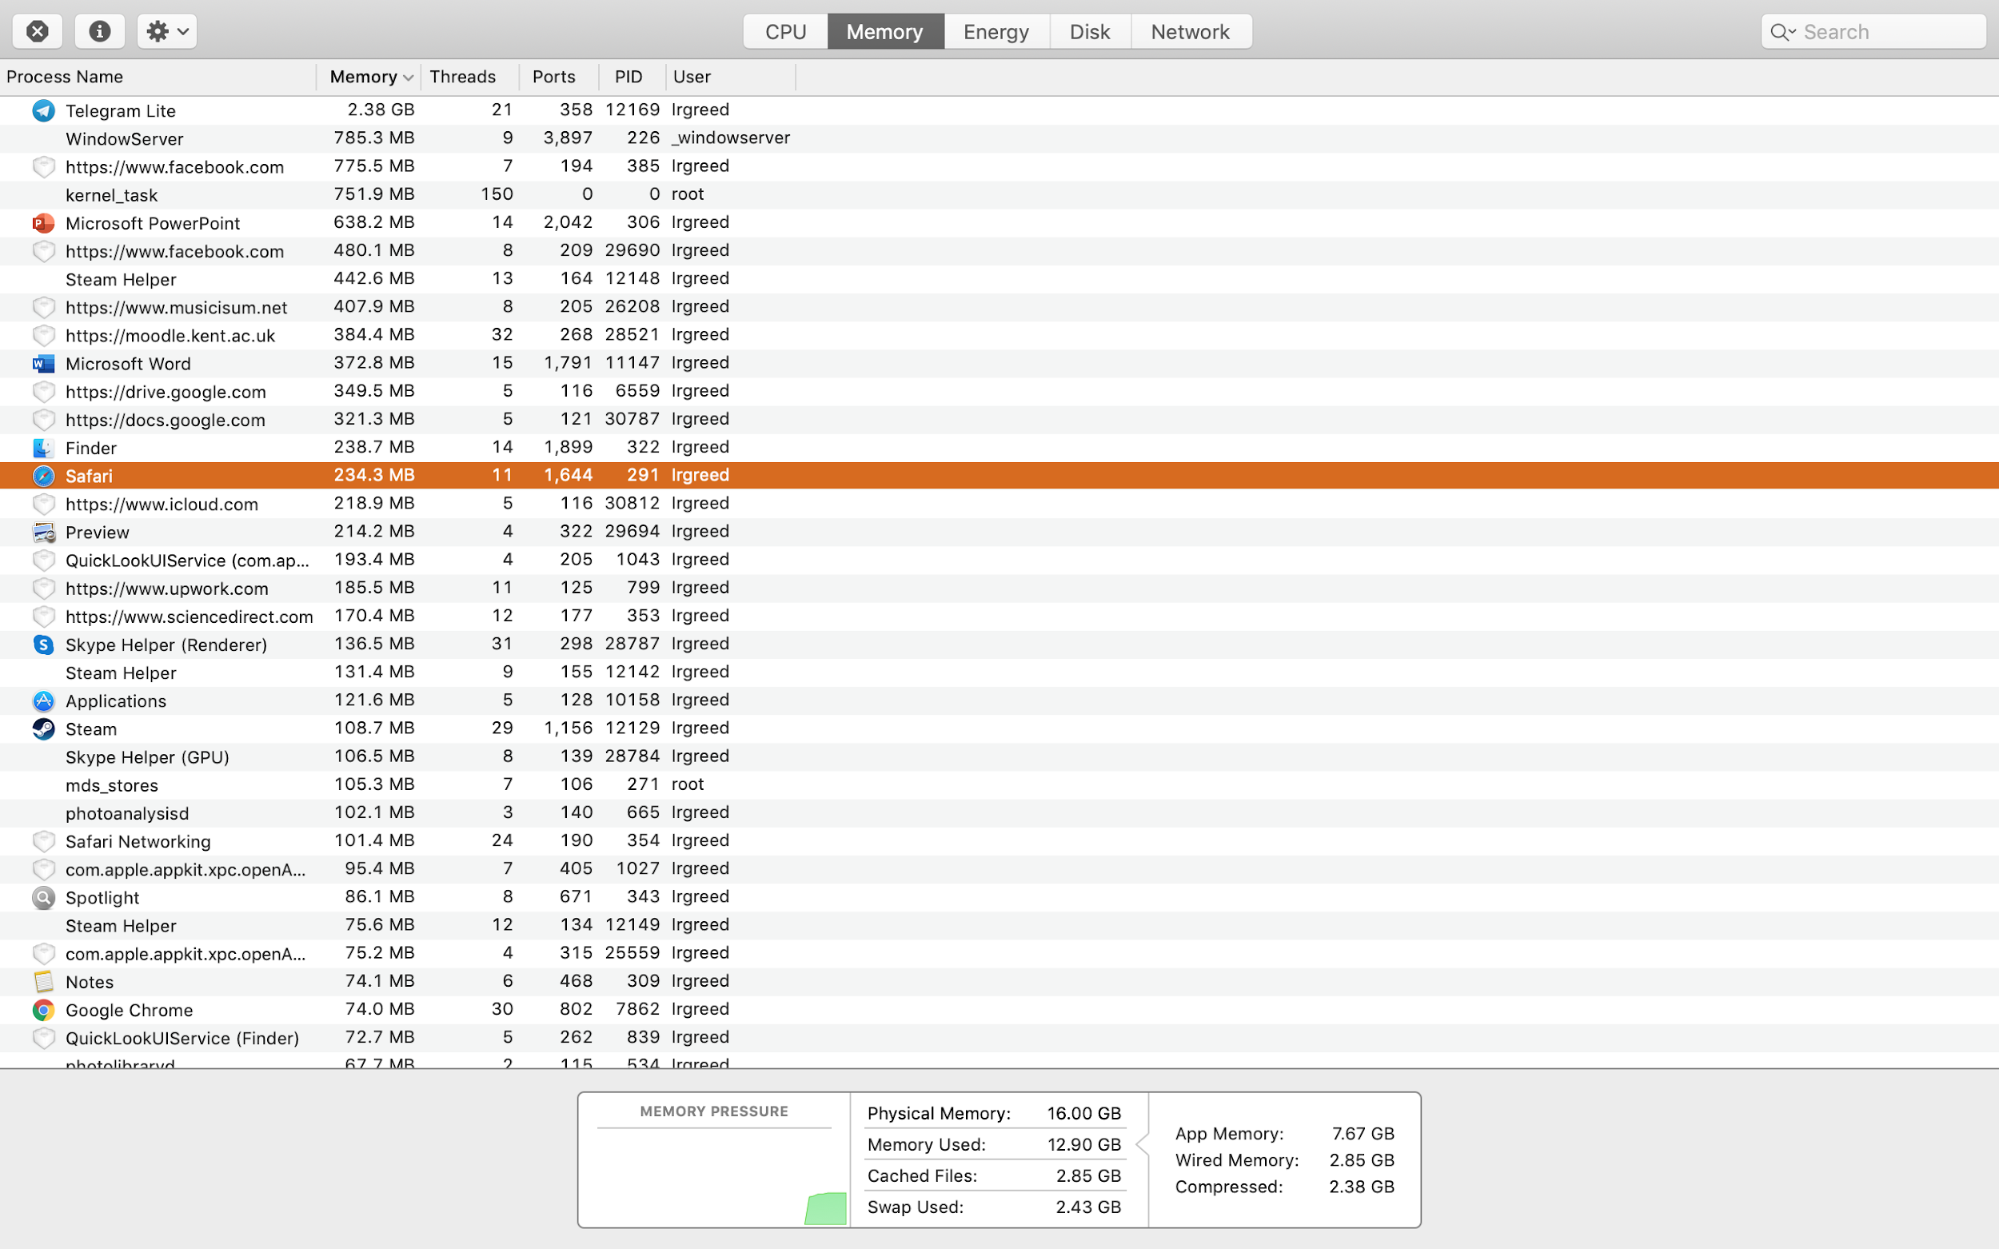 processes in the Memory tab in Activity Monitor on MacBook